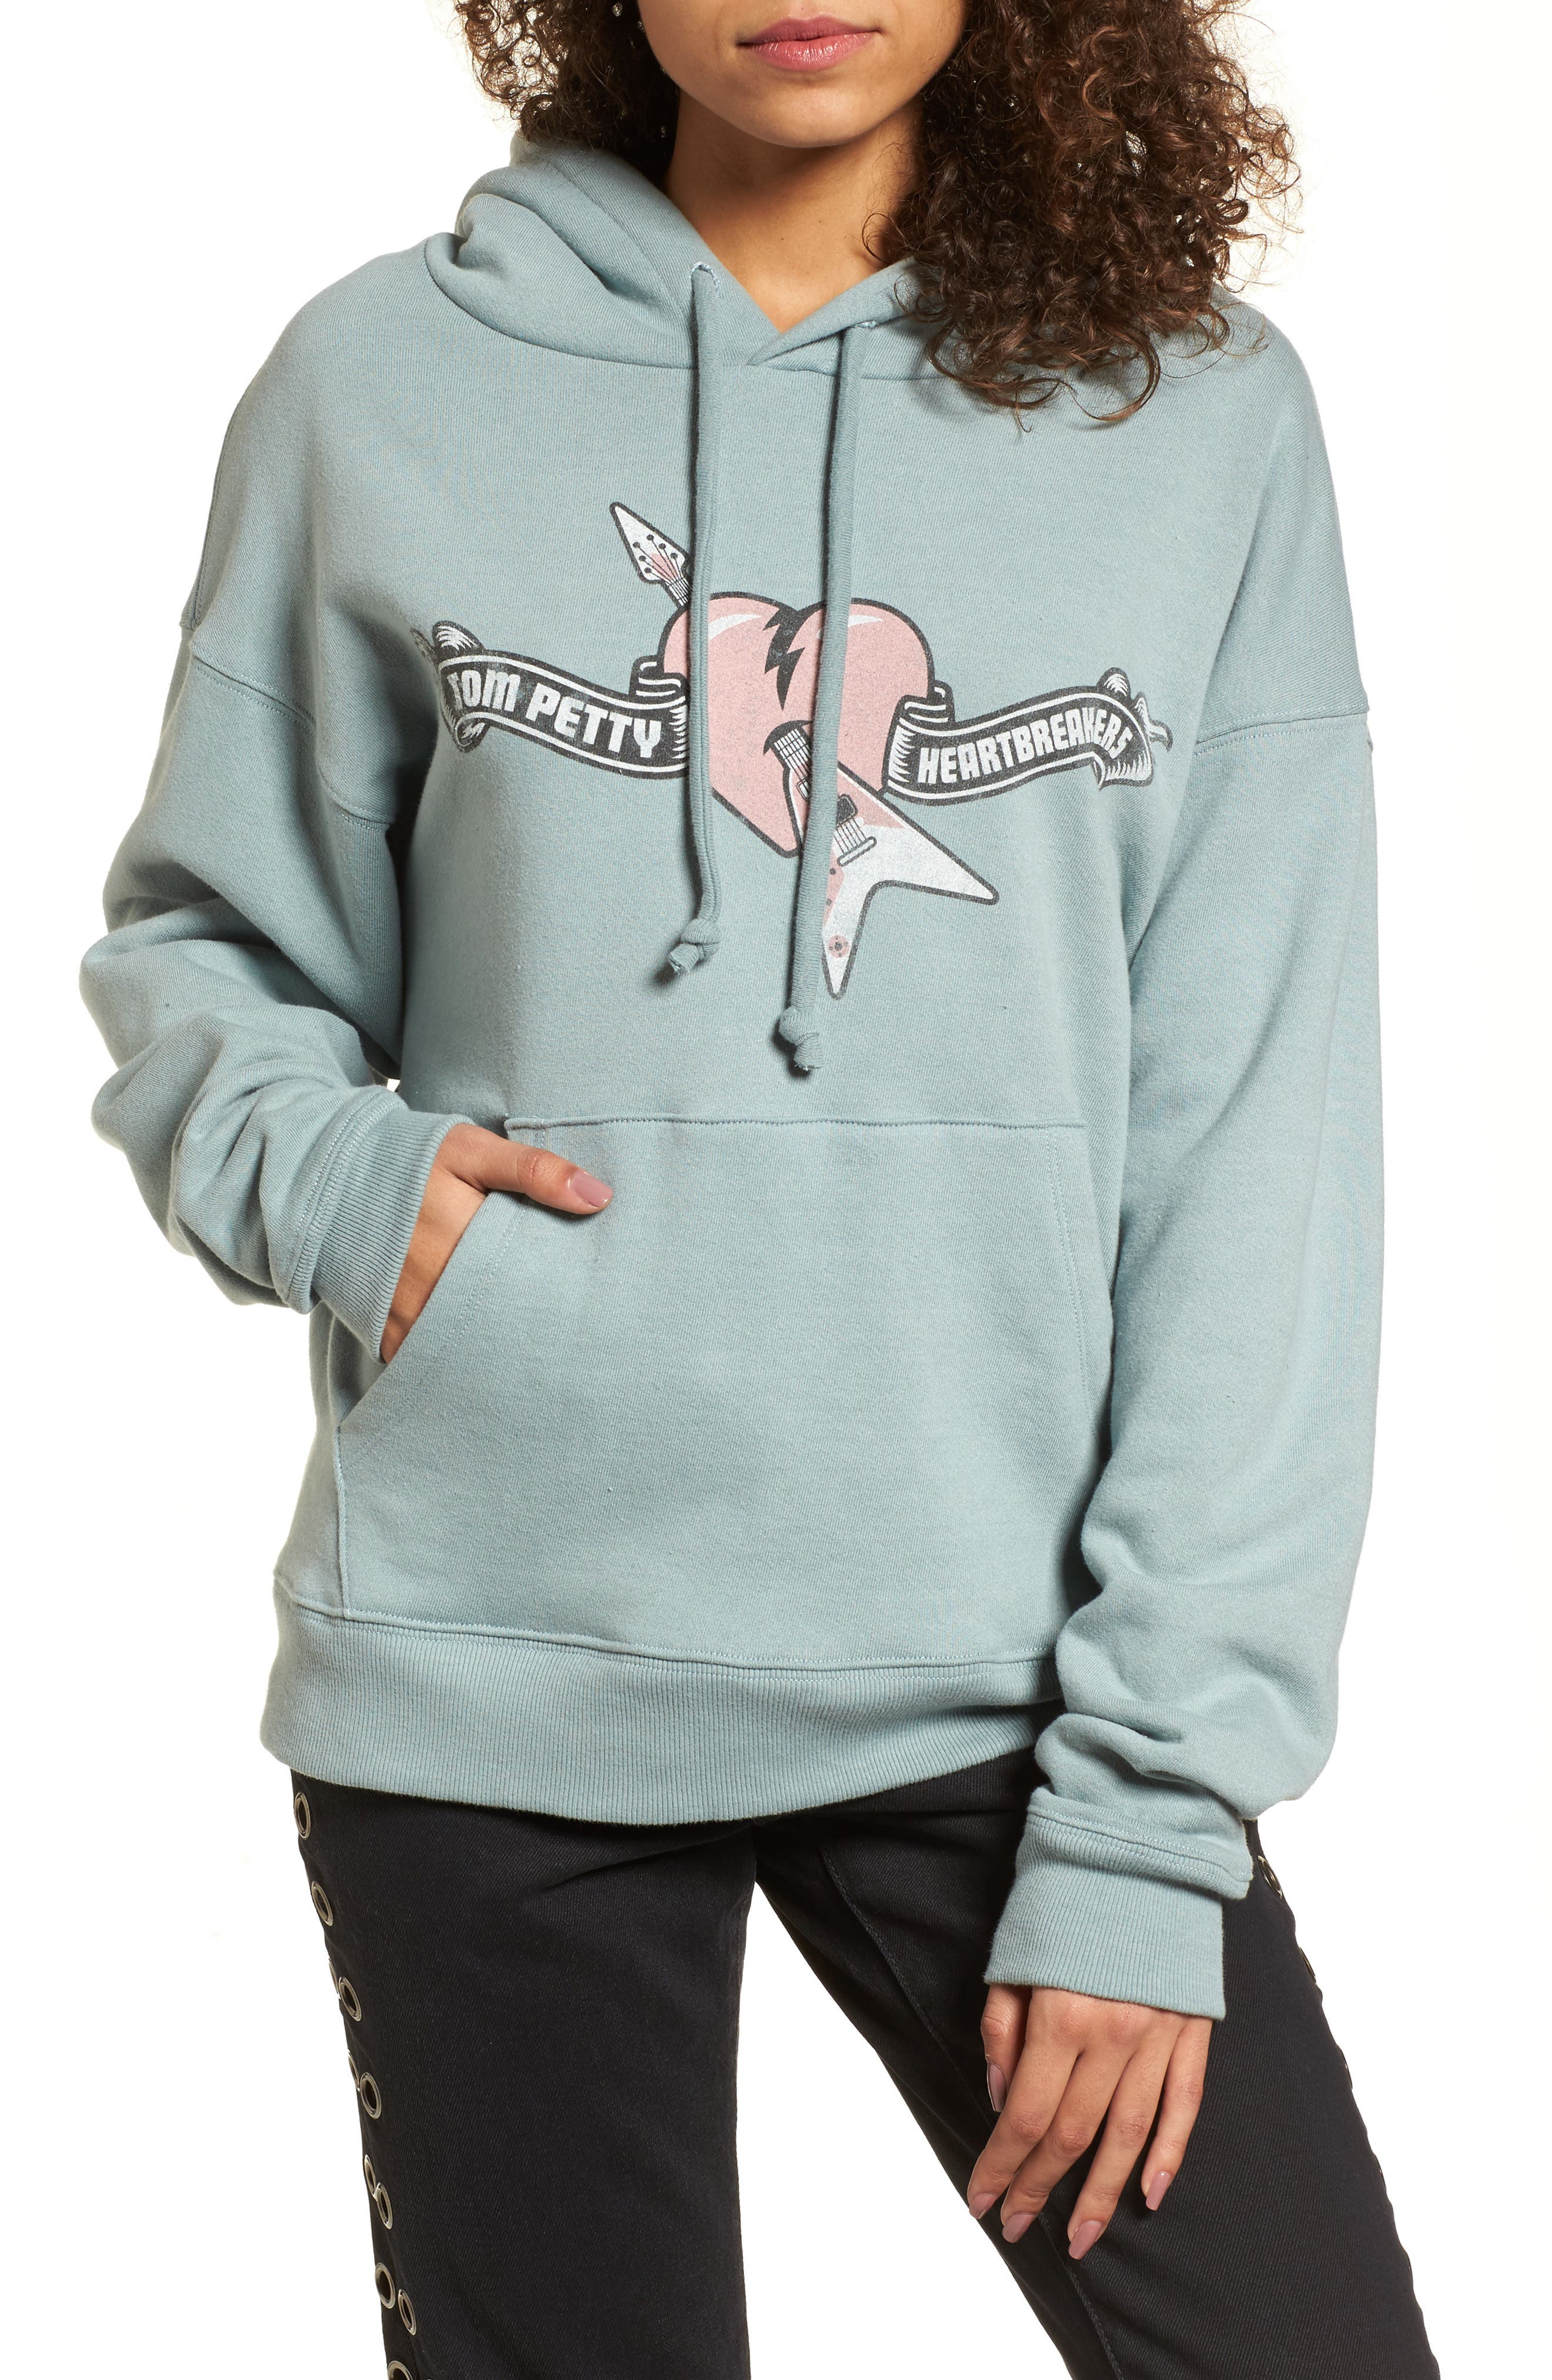 Tom Petty and the Heartbreakers Hoodie,                         Main,                         color, 400